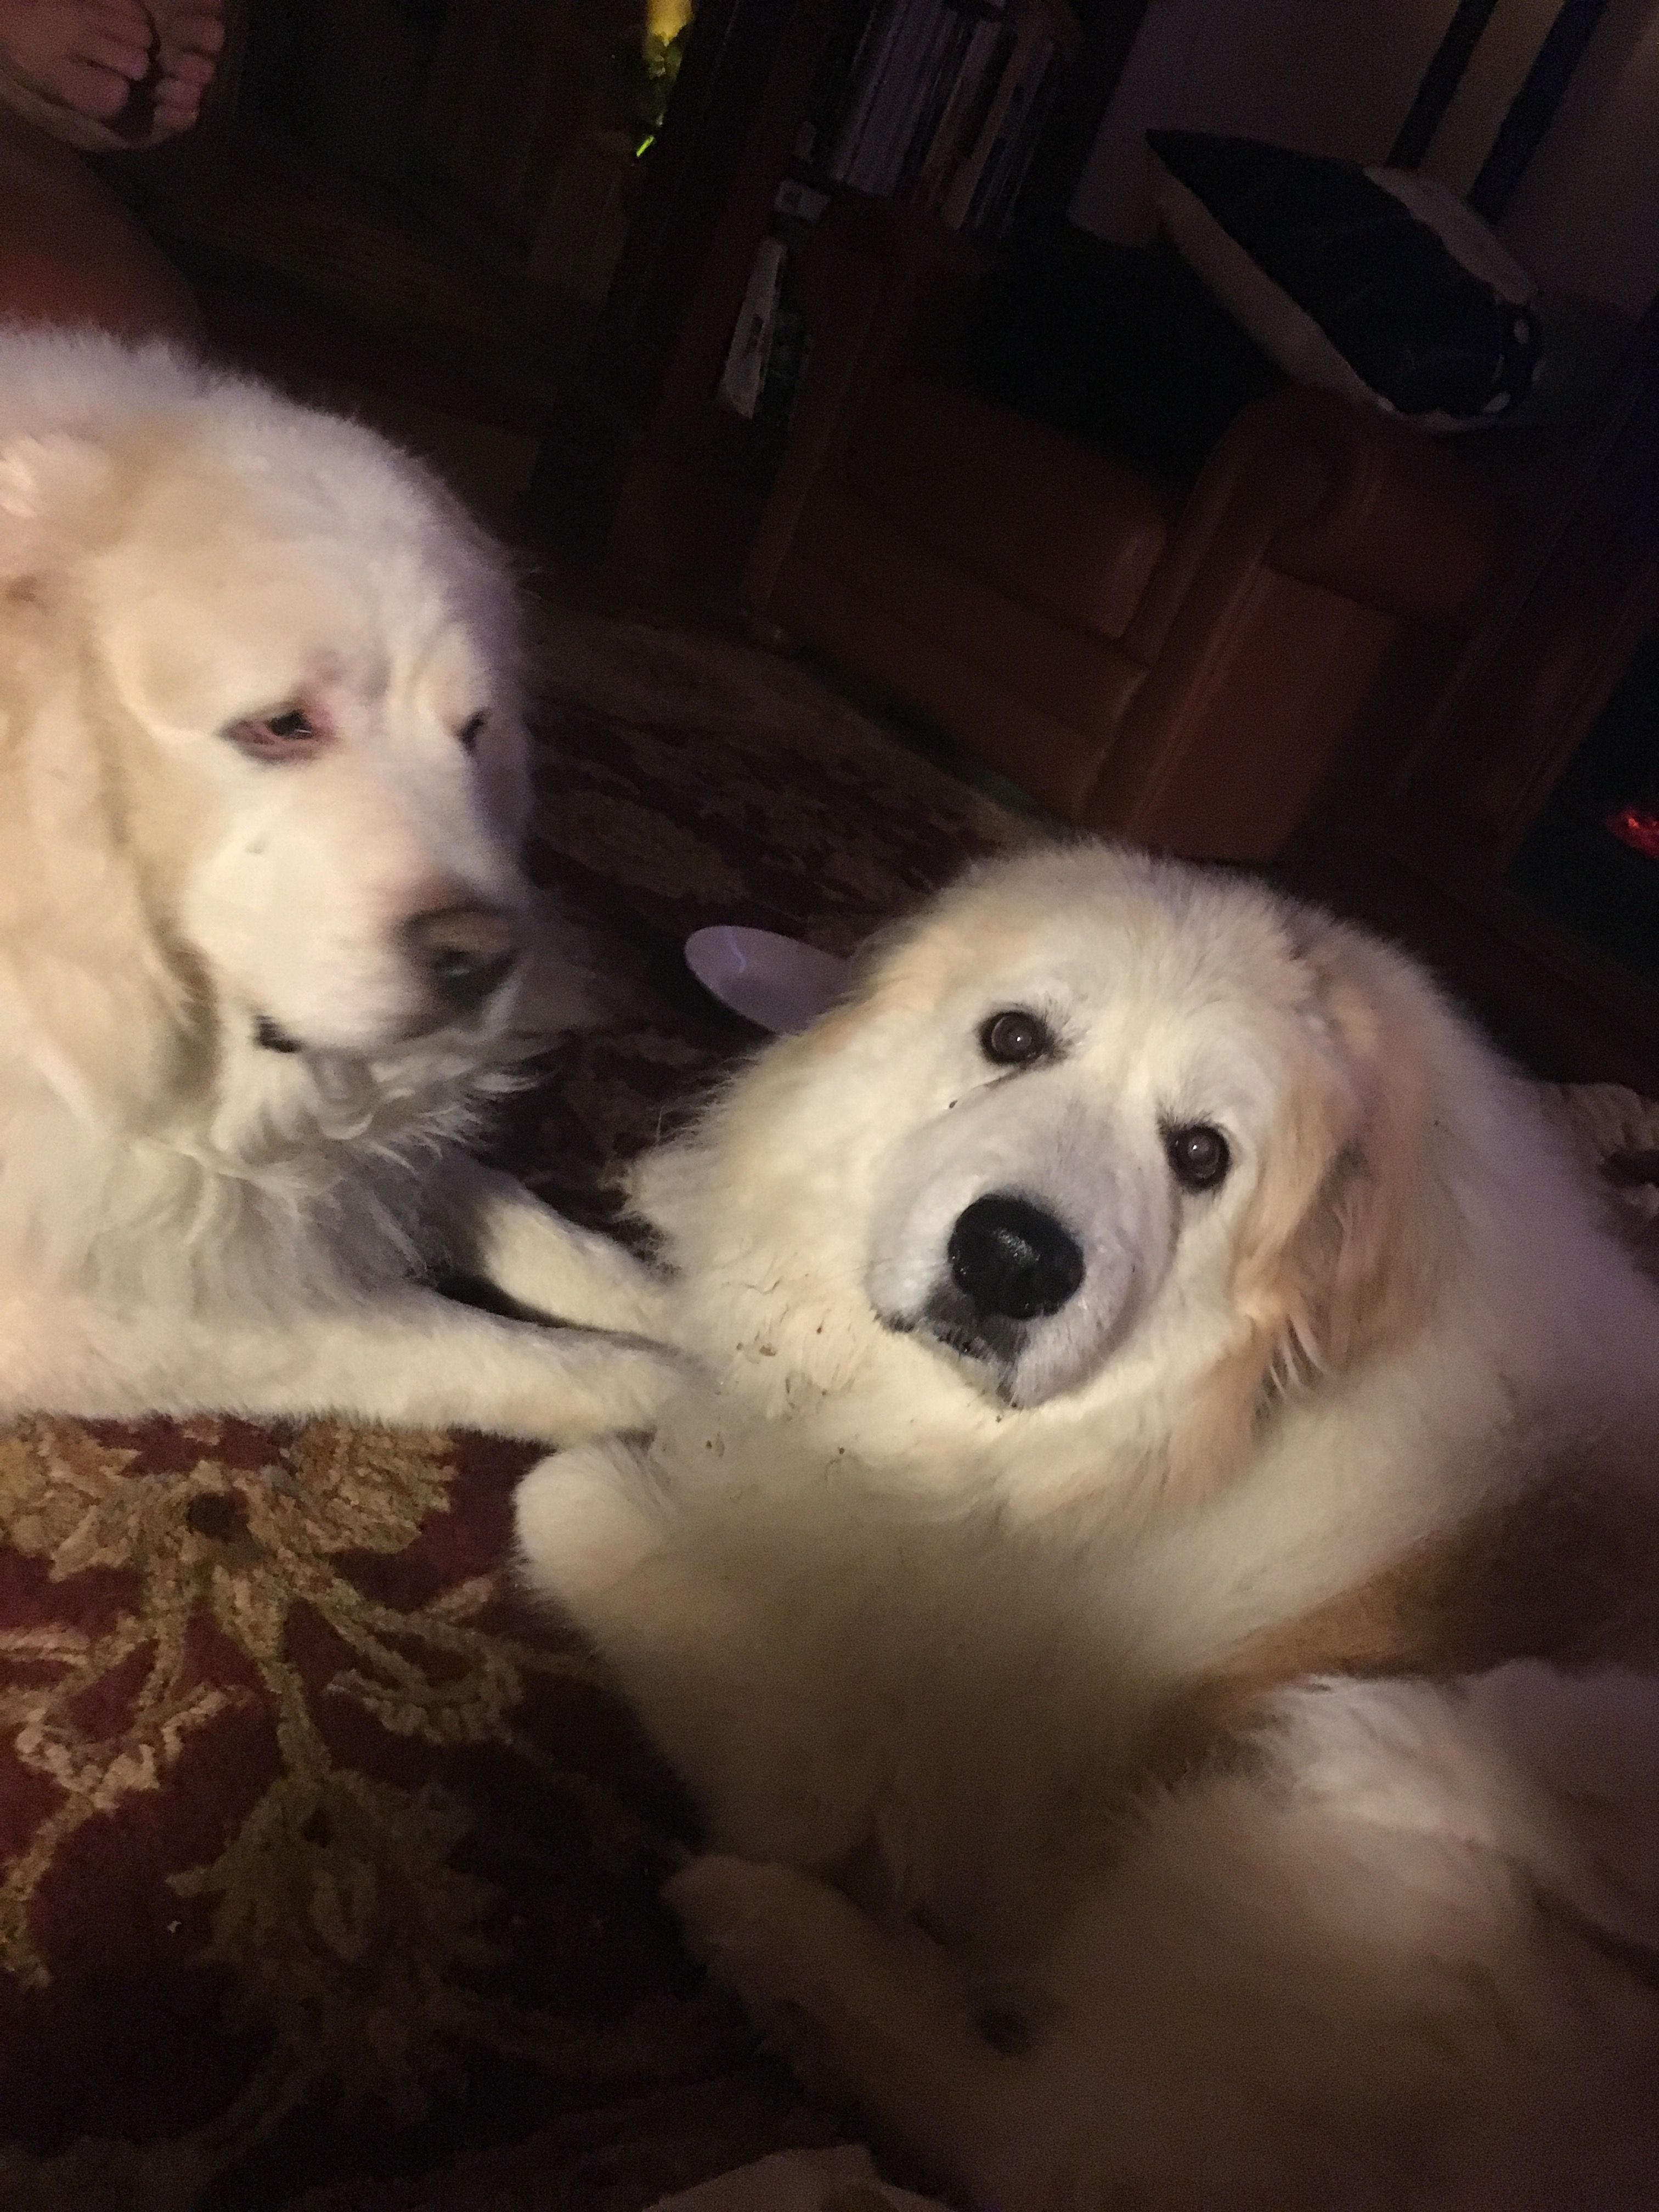 Pin By Judy Schnick On Pictures Great Pyrenees Dogs Puppies Dogs